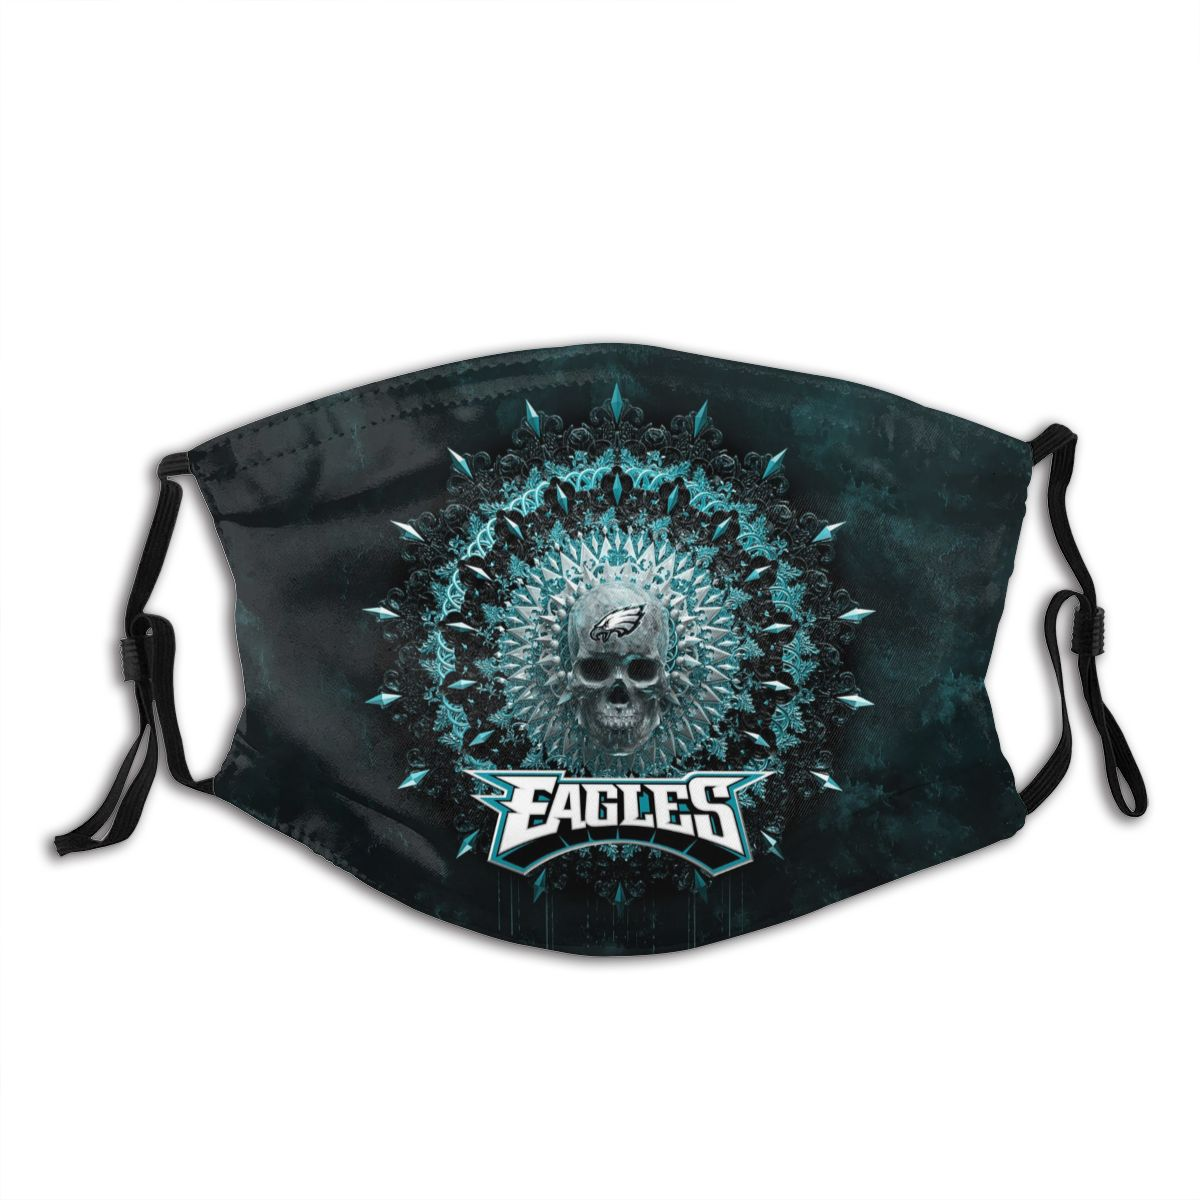 Eagles Adult Cloth Face Covering With Filter